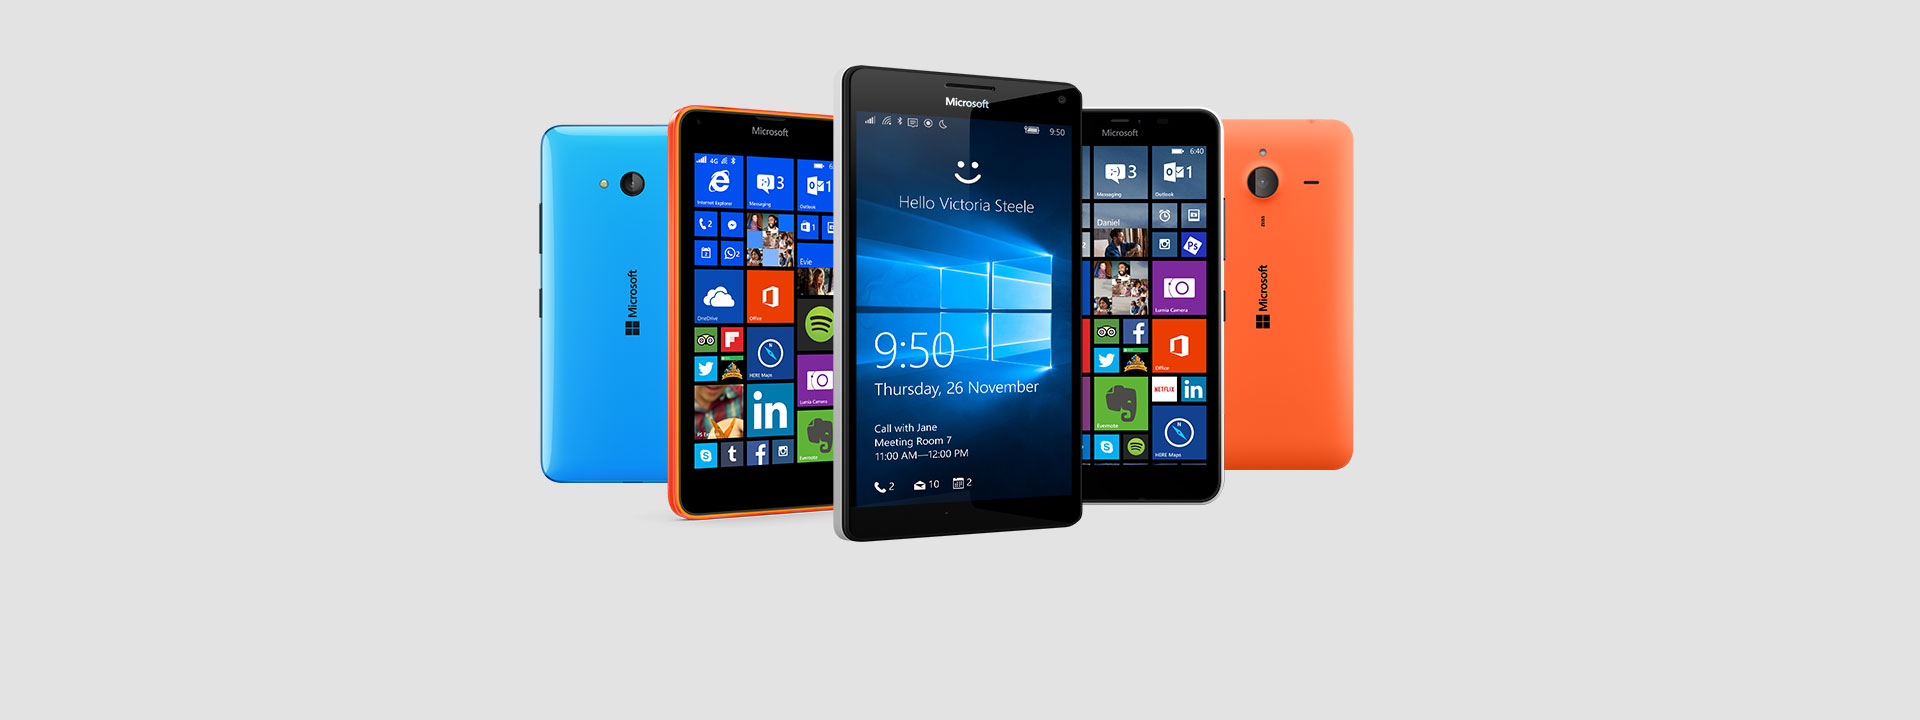 Lumia phones, find one that's right for you